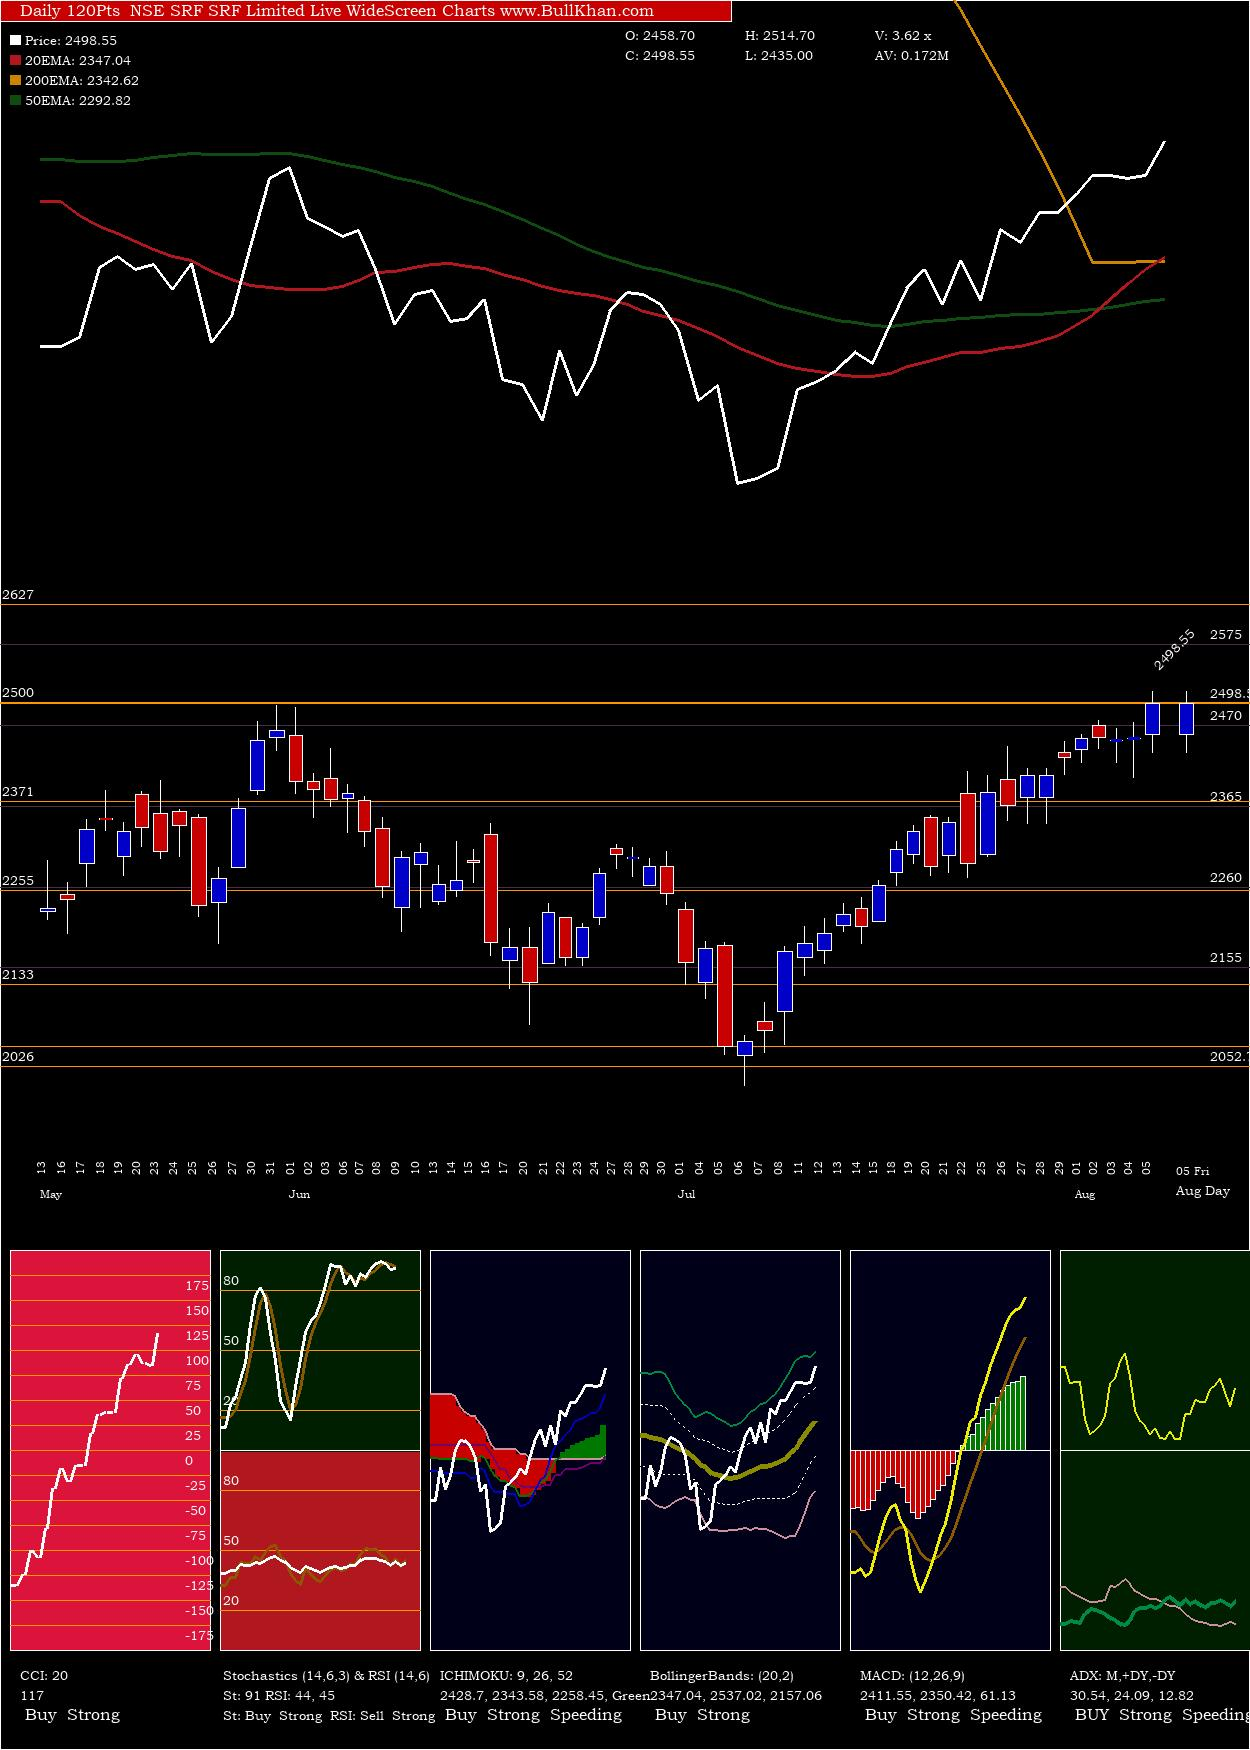 SRF Limited charts and indicators